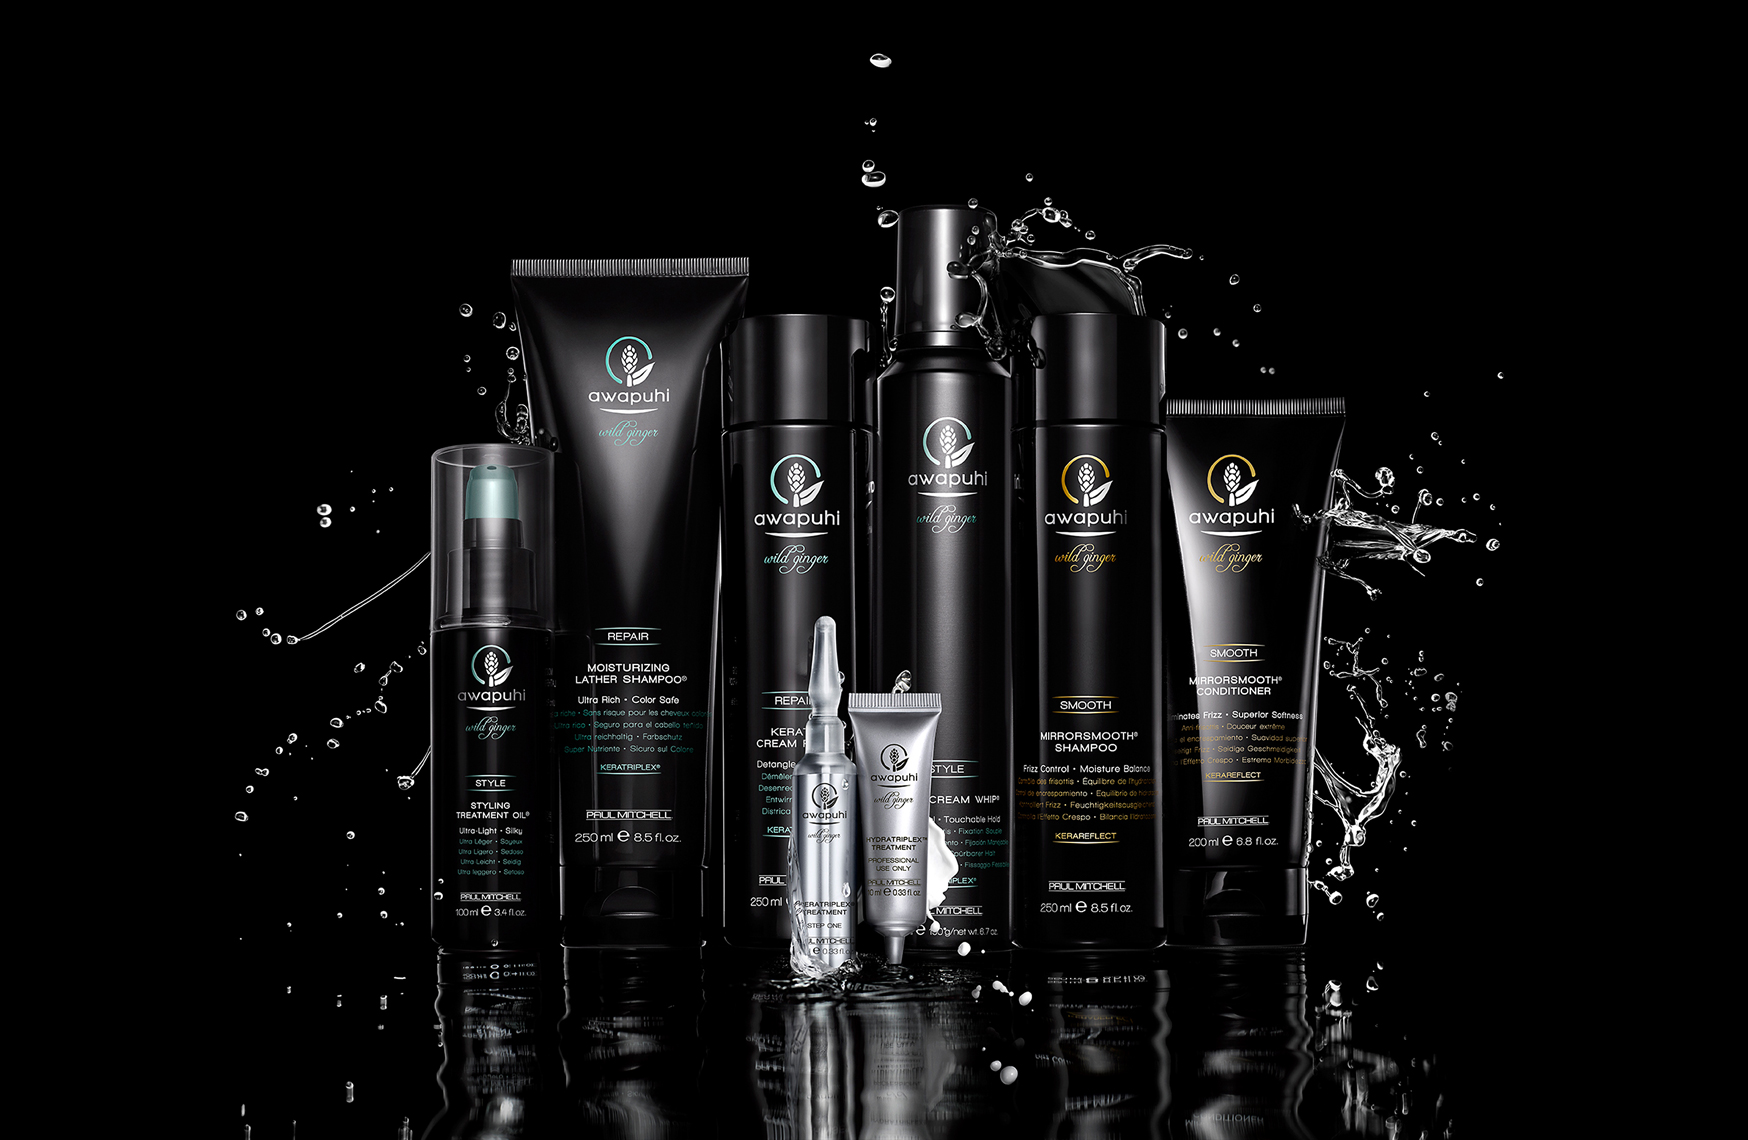 PAUL MITCHELL SYSTEMS